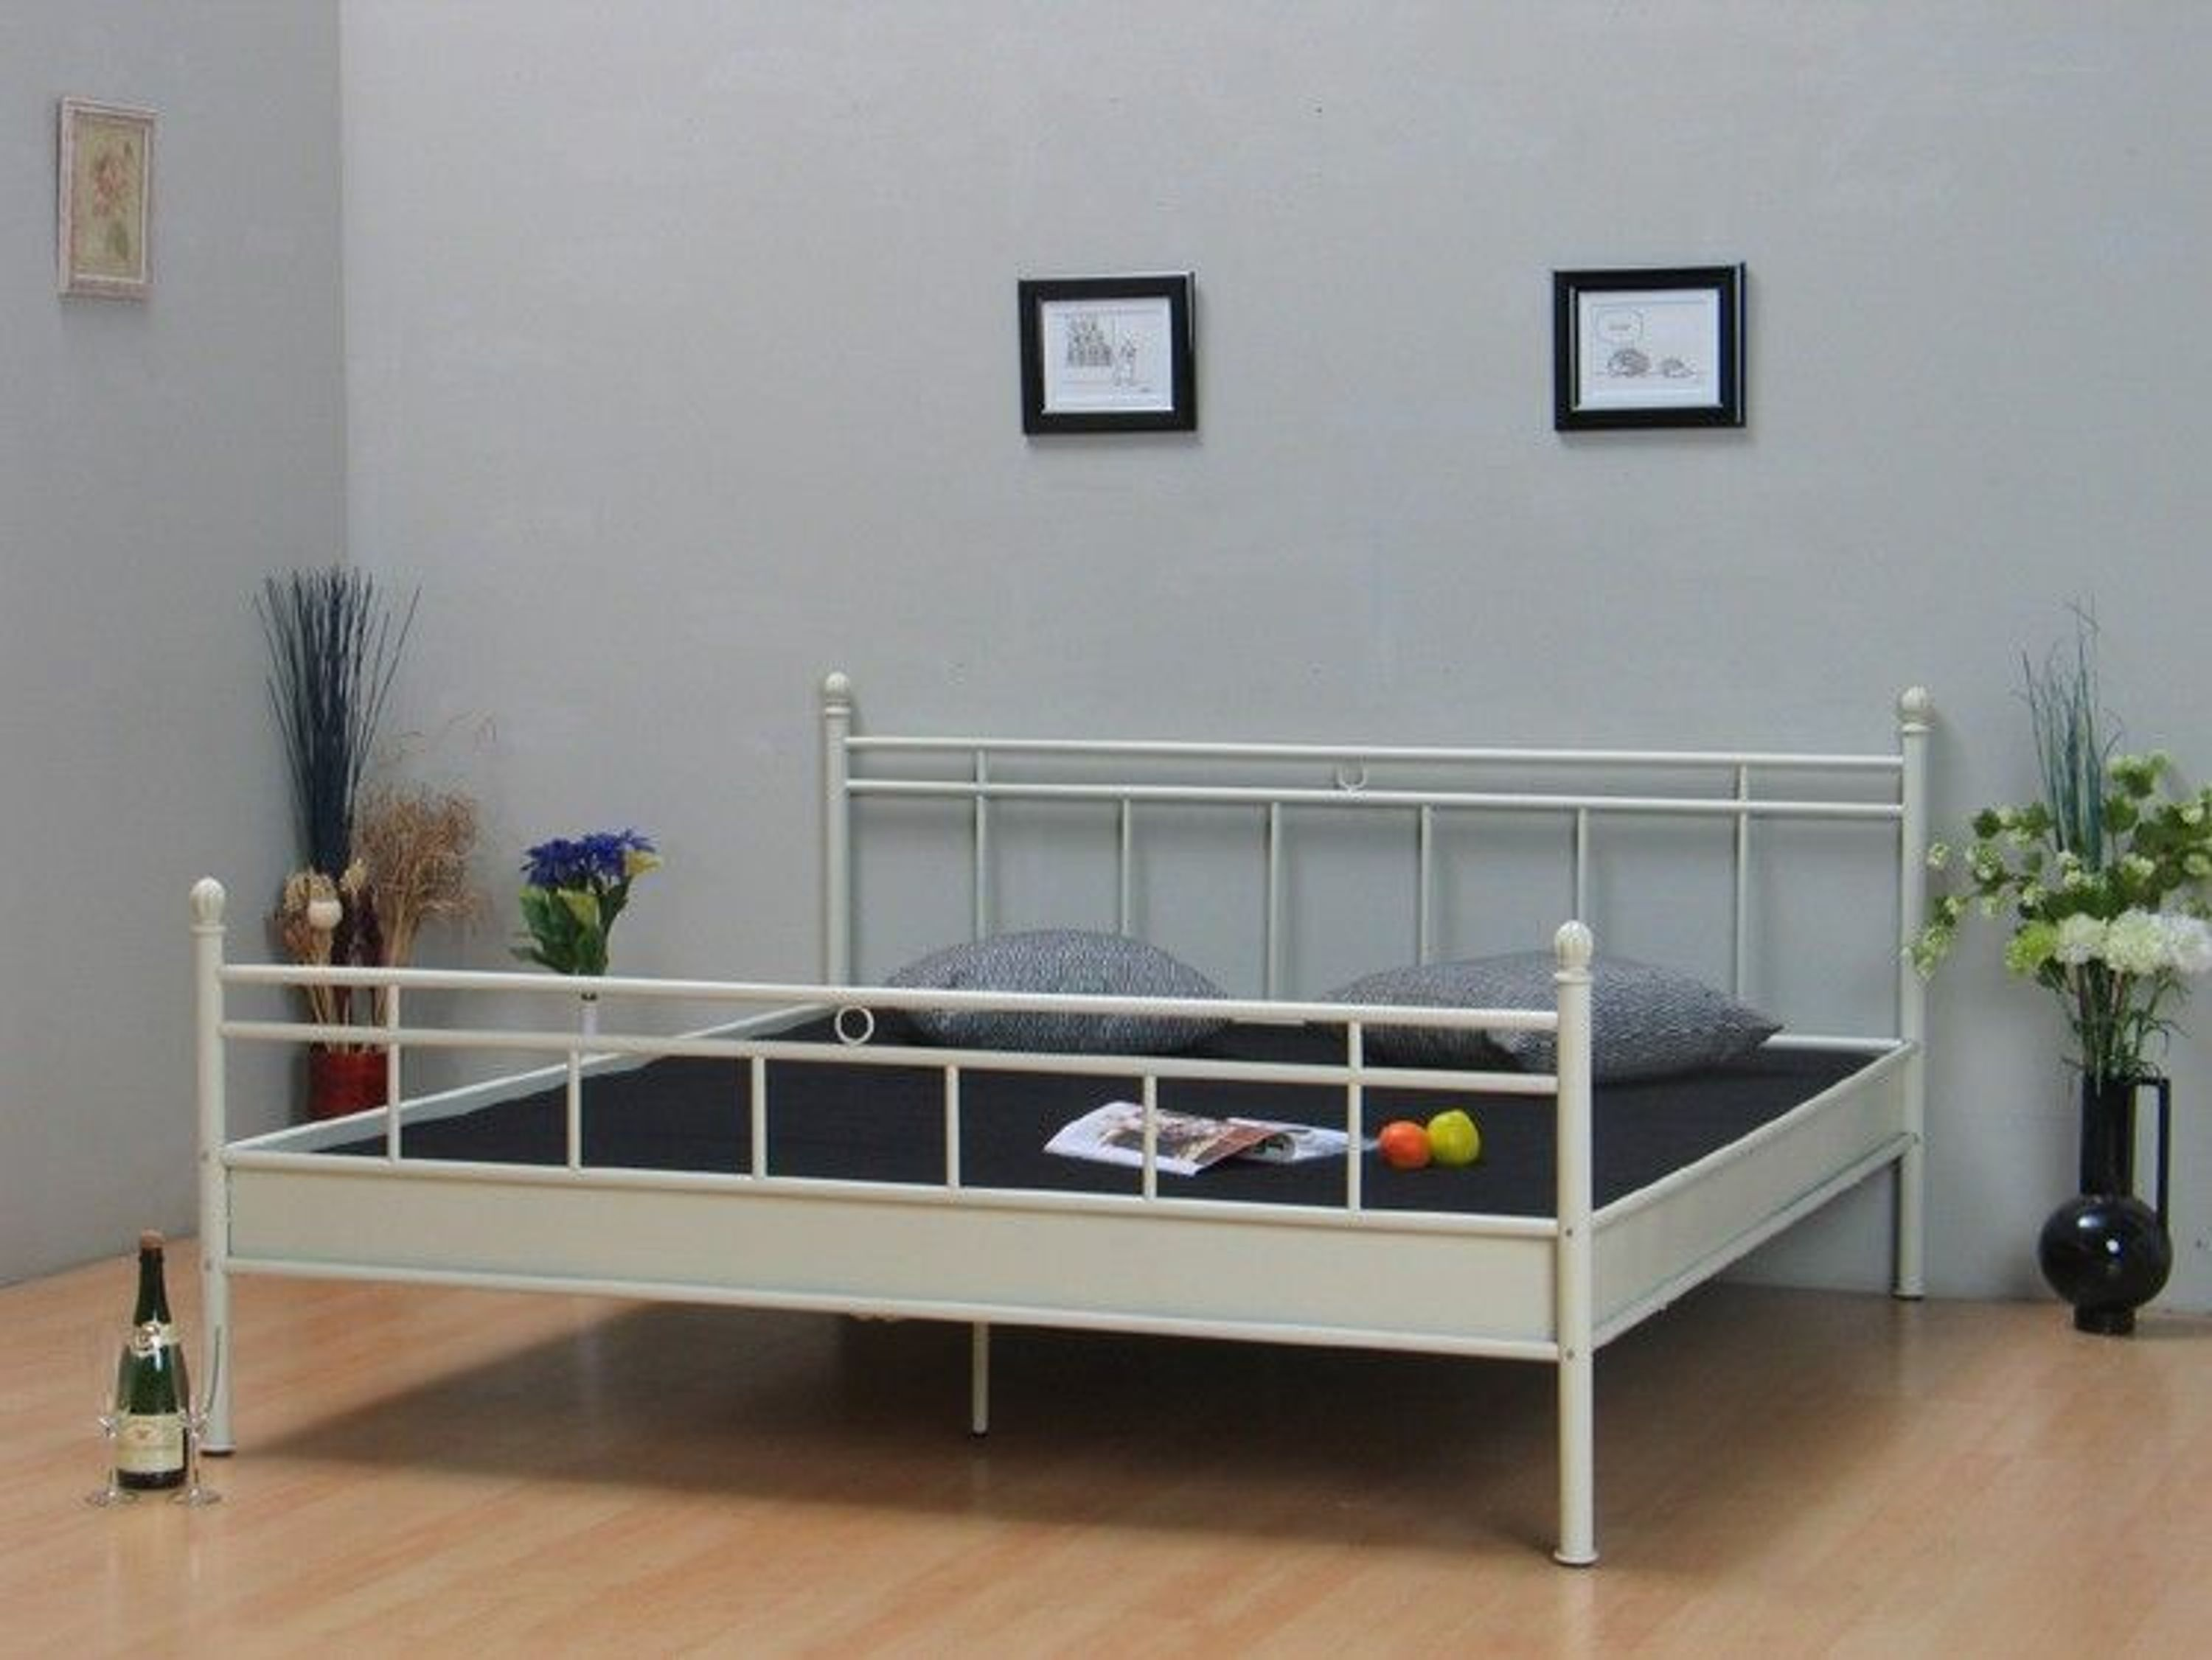 metallbett 180x200 doppelbett bett ehebett vanilla neu kaufen bei. Black Bedroom Furniture Sets. Home Design Ideas